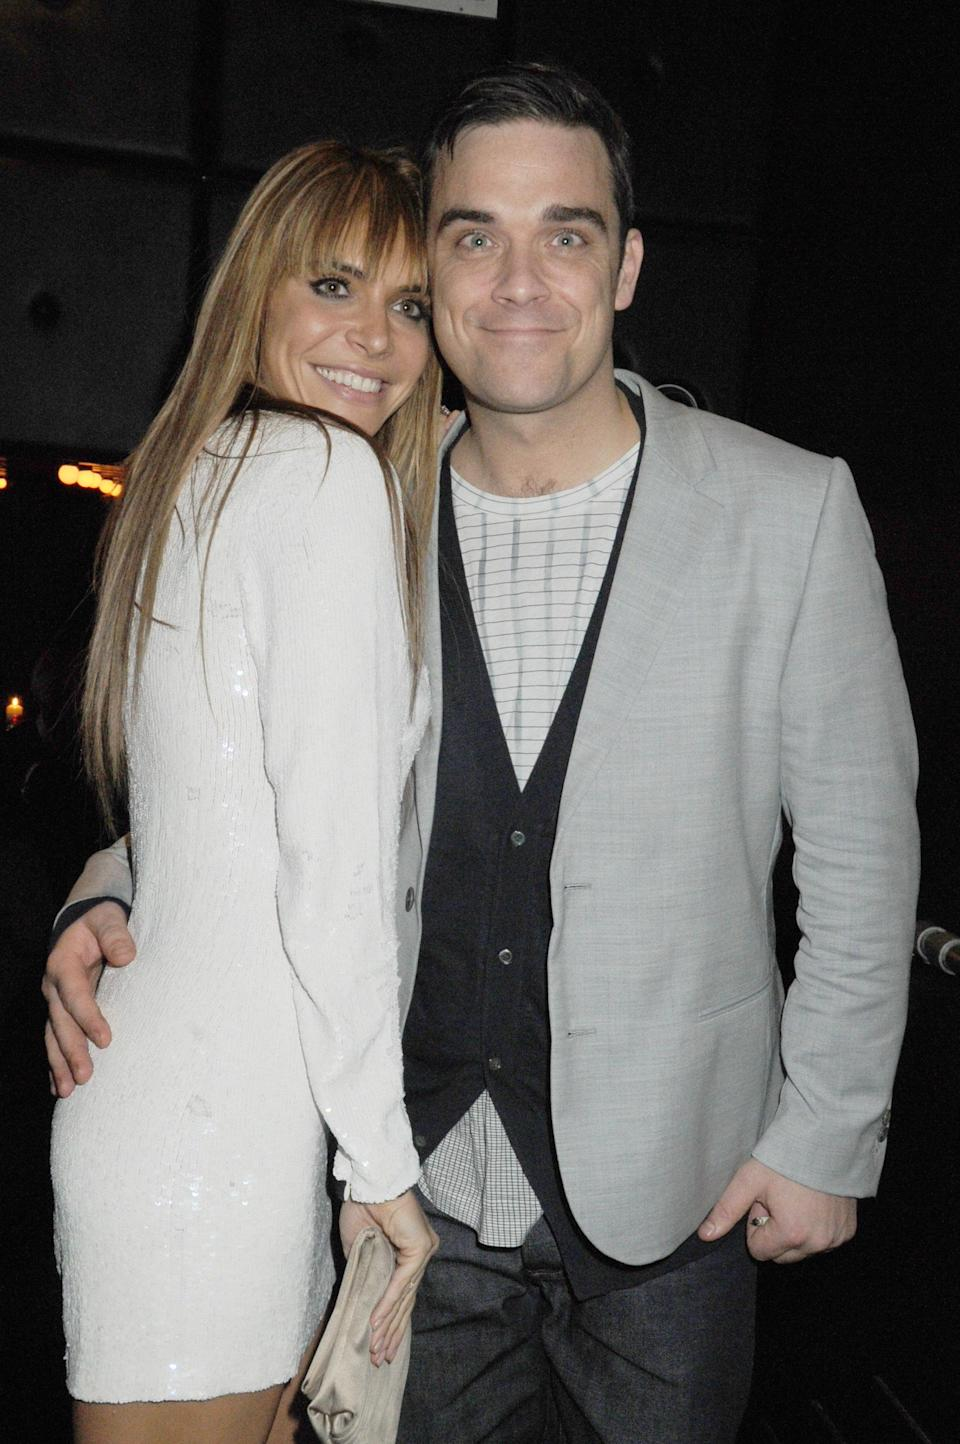 Ayda Field and Robbie Williams attend the Brit Awards after party held by EMI at the Supper Club on February 16, 2010 in London, England. (Photo by Dave M. Benett/Getty Images)